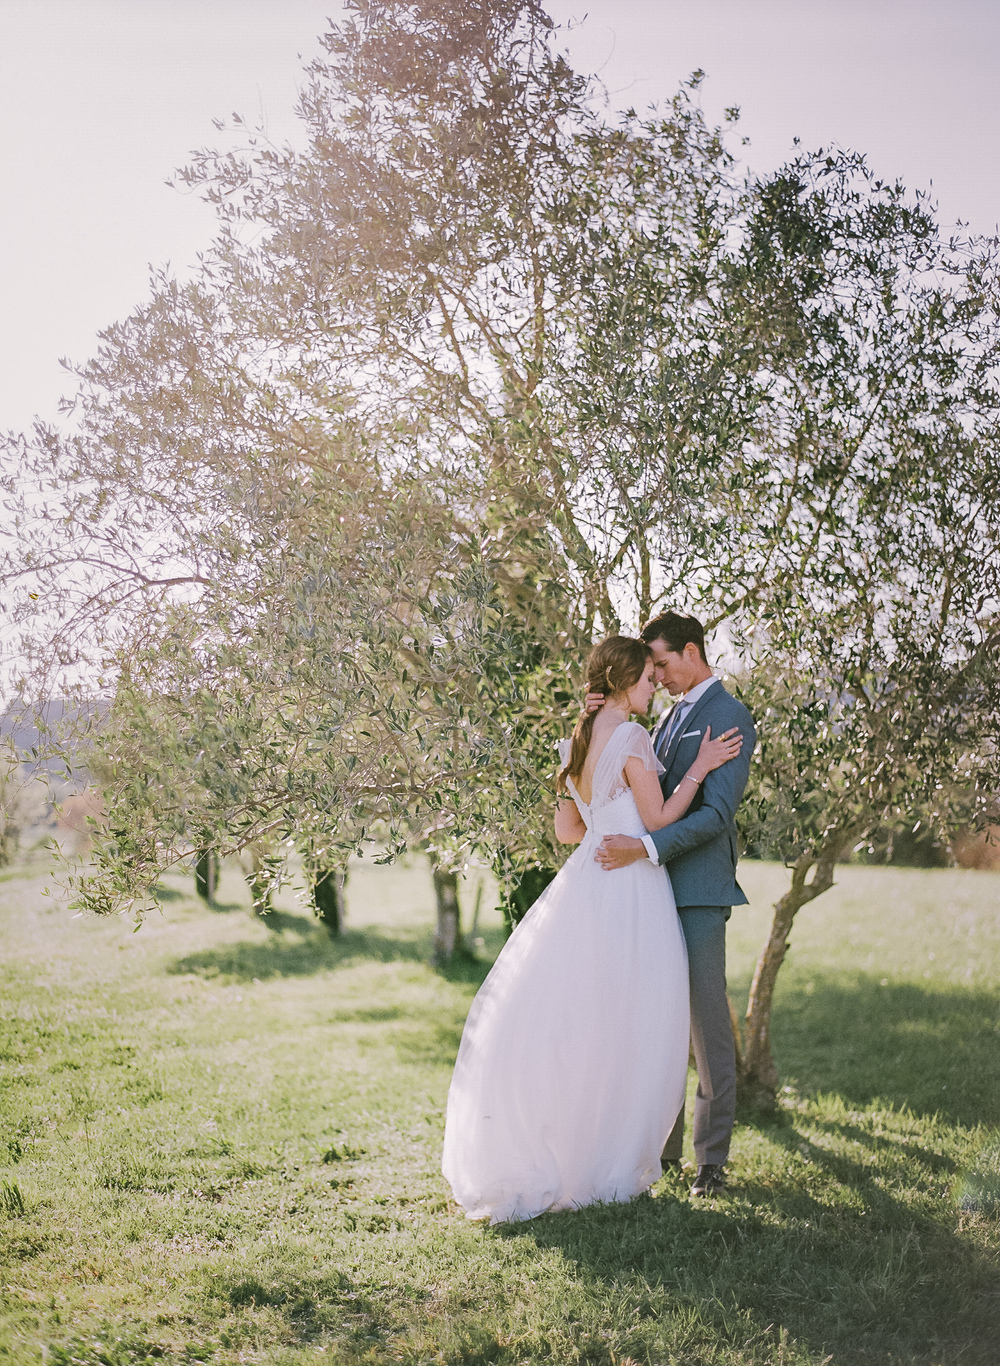 Courtney_Elizabeth_Media_France_Elopement_Light_Workshop-031.jpg